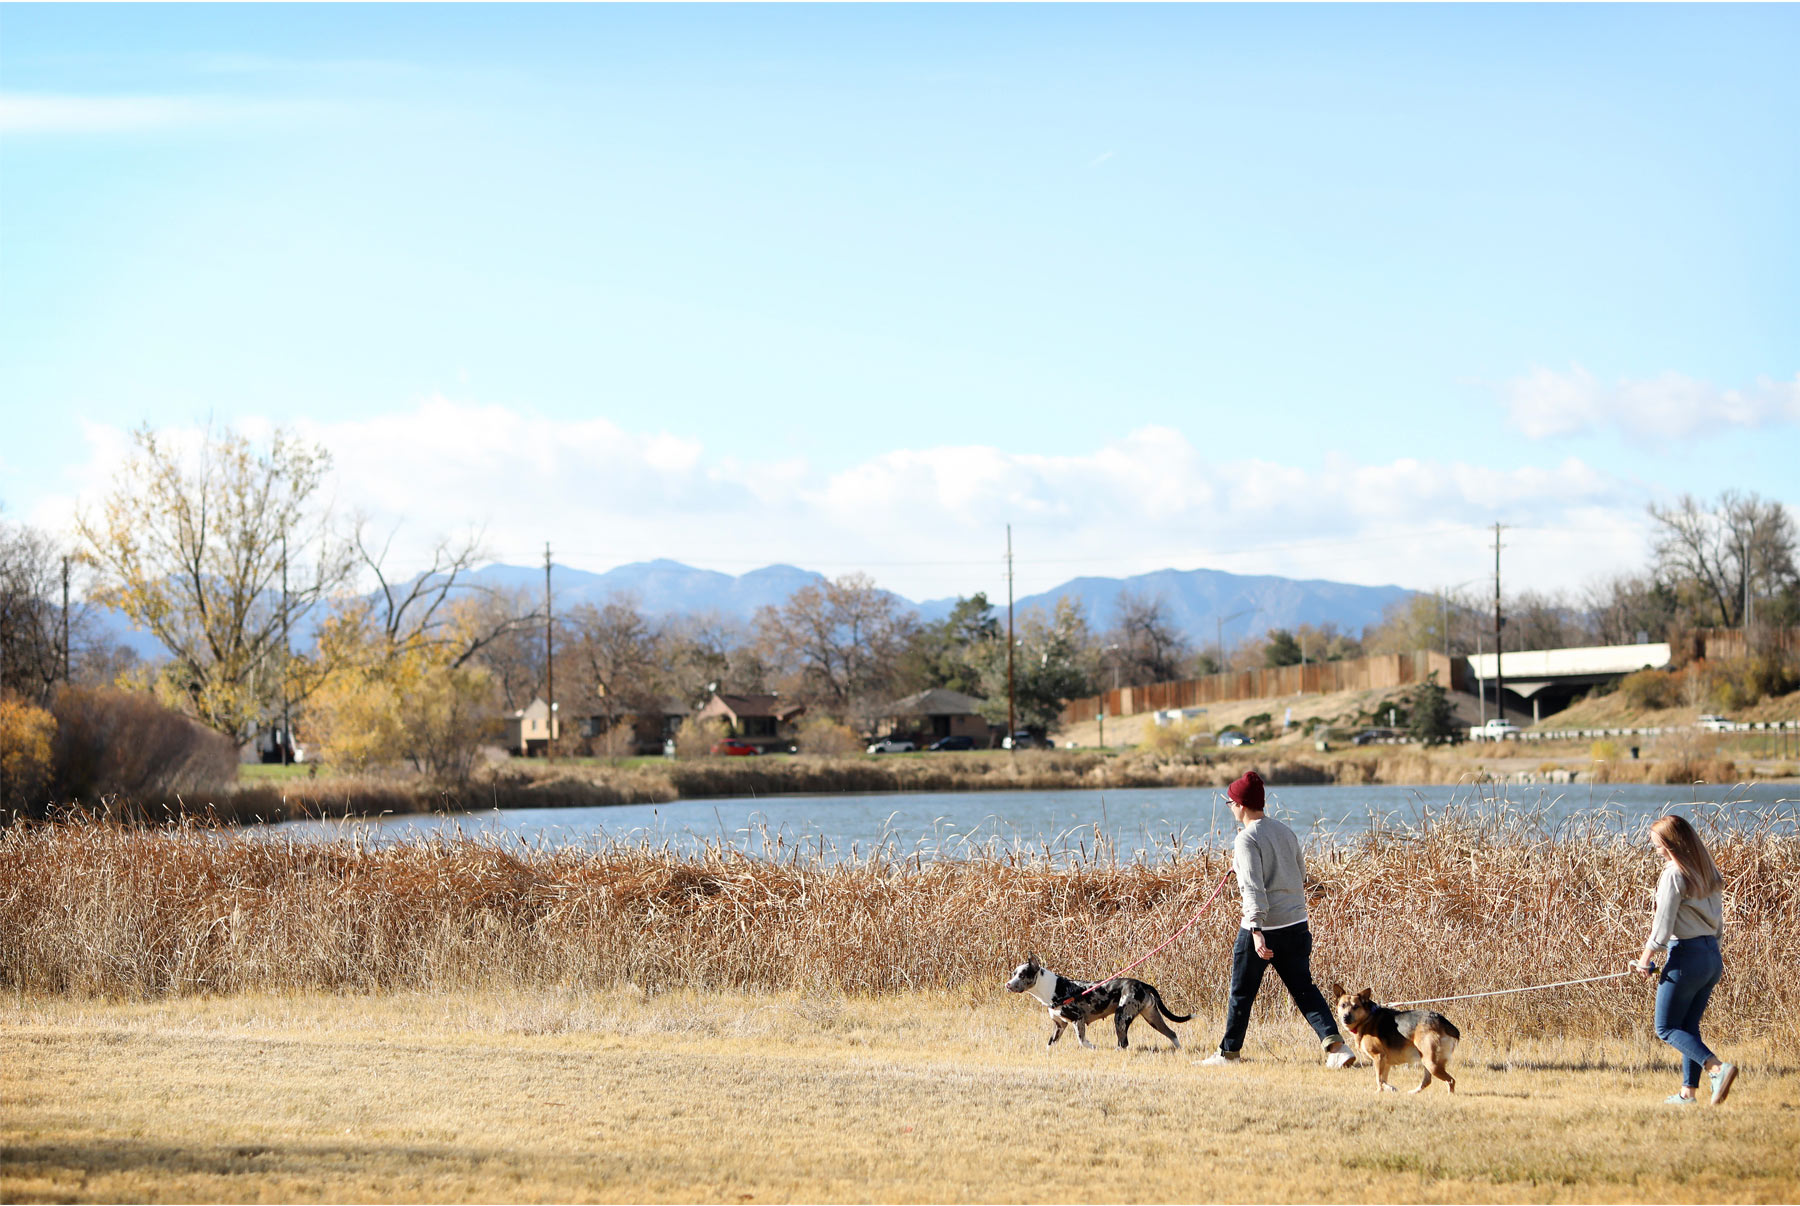 02-Vick-Photography-Fly-to-You-Engagement-Session-Denver-Colorado-Dog-Walk-Field-Danielle-and-Tom.jpg